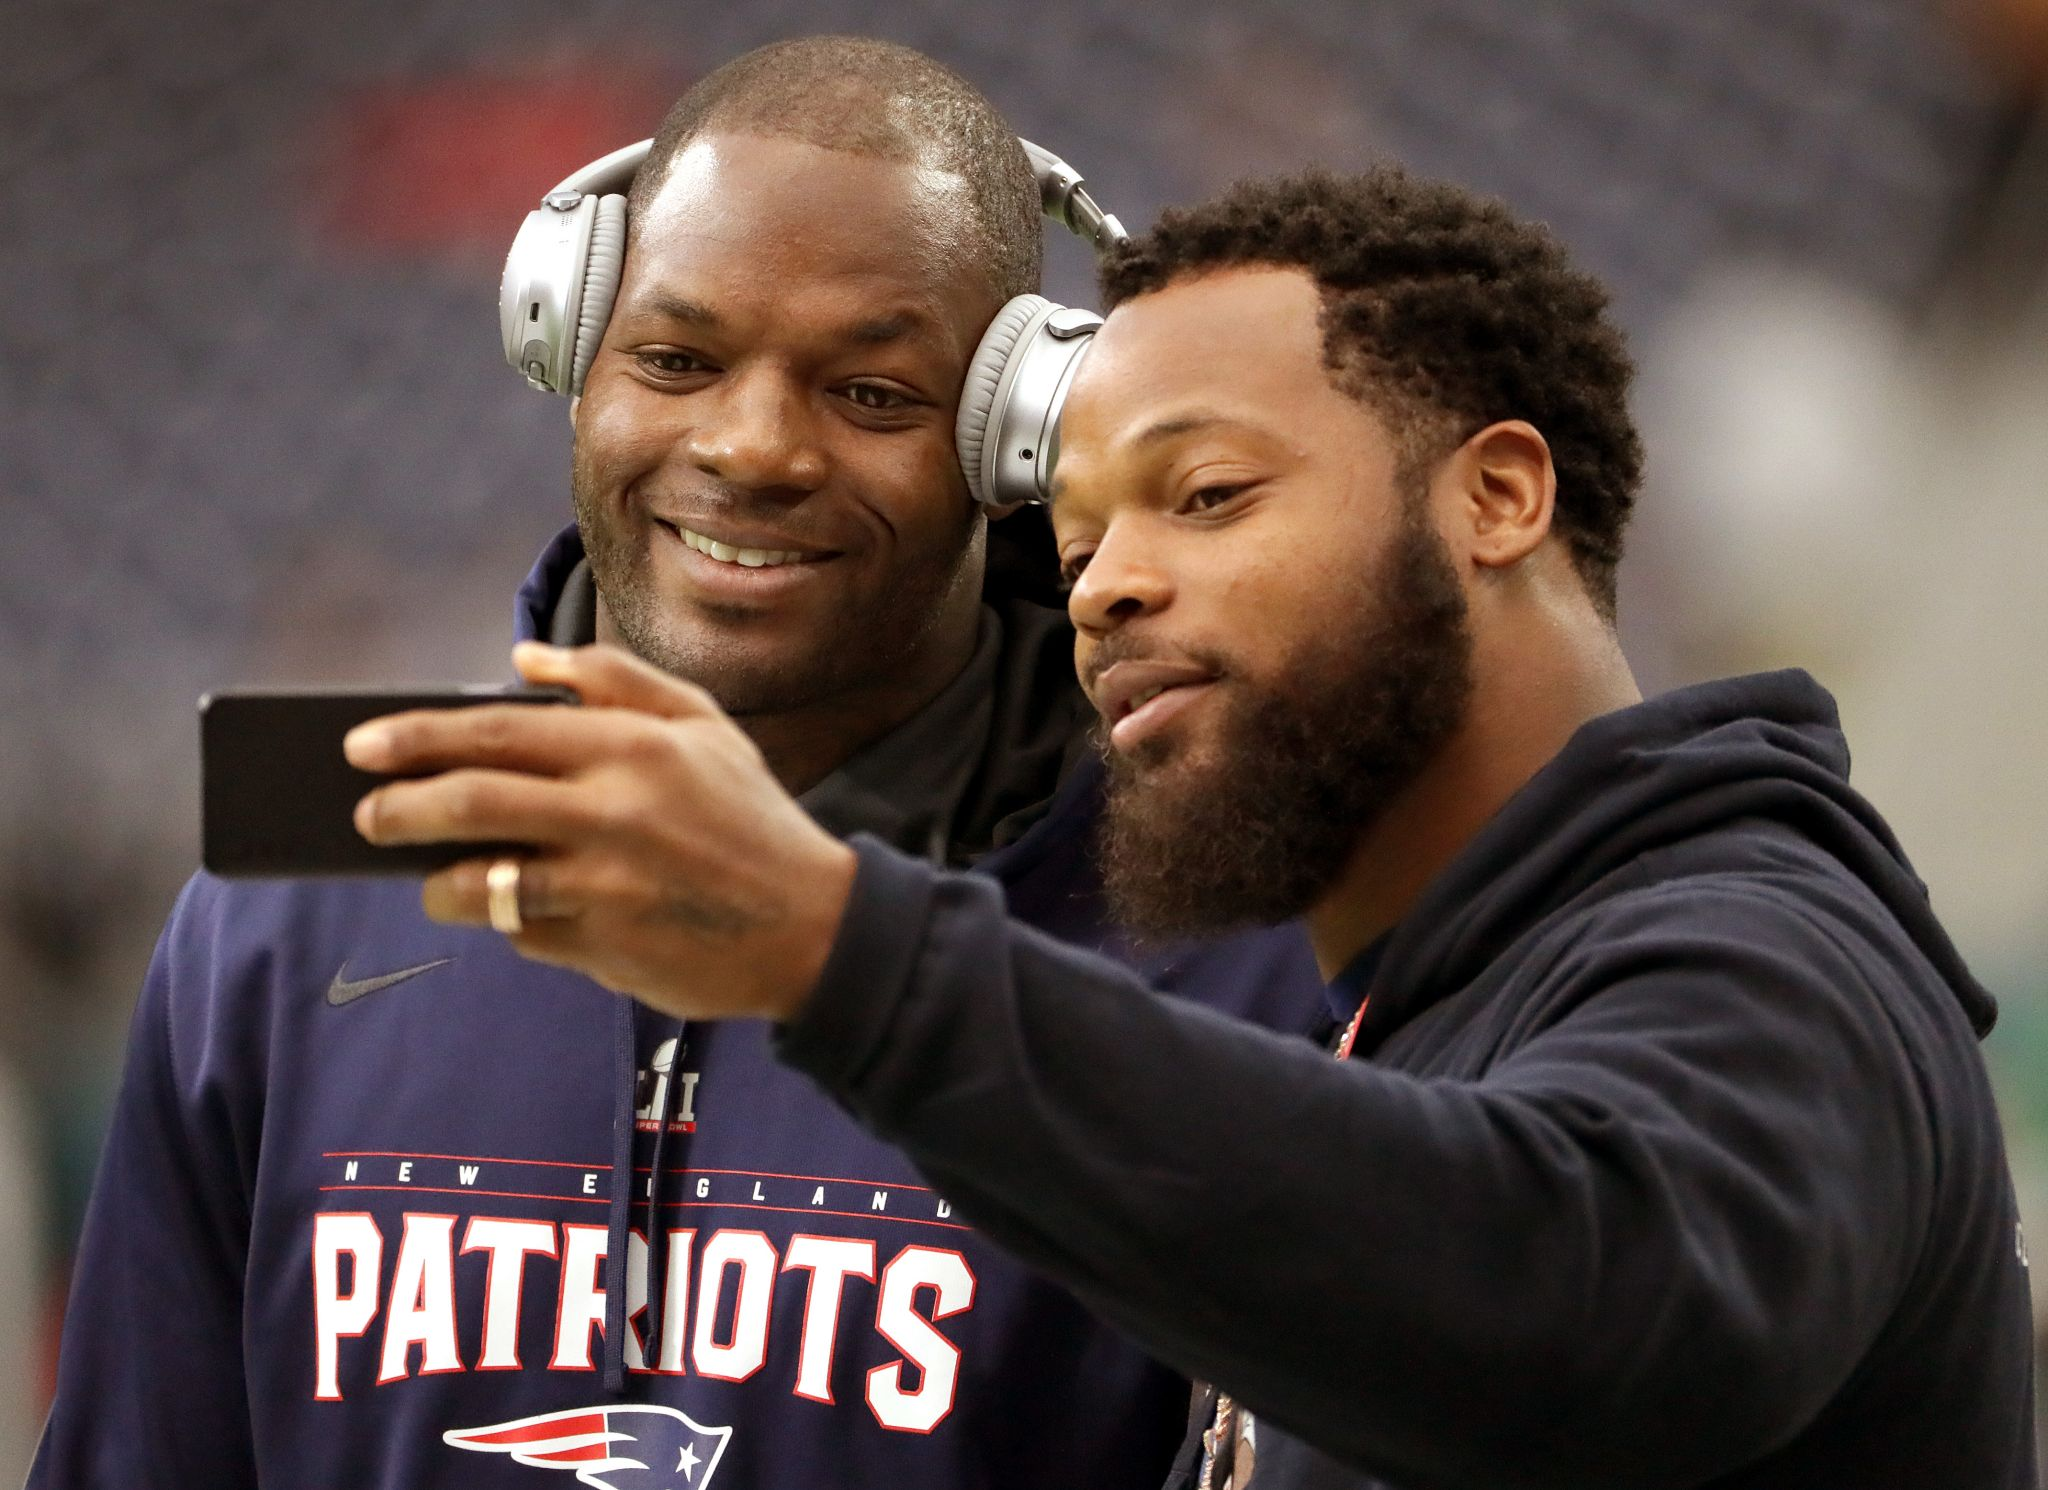 Seahawks Michael Bennett pulls out of NFL players Israel trip